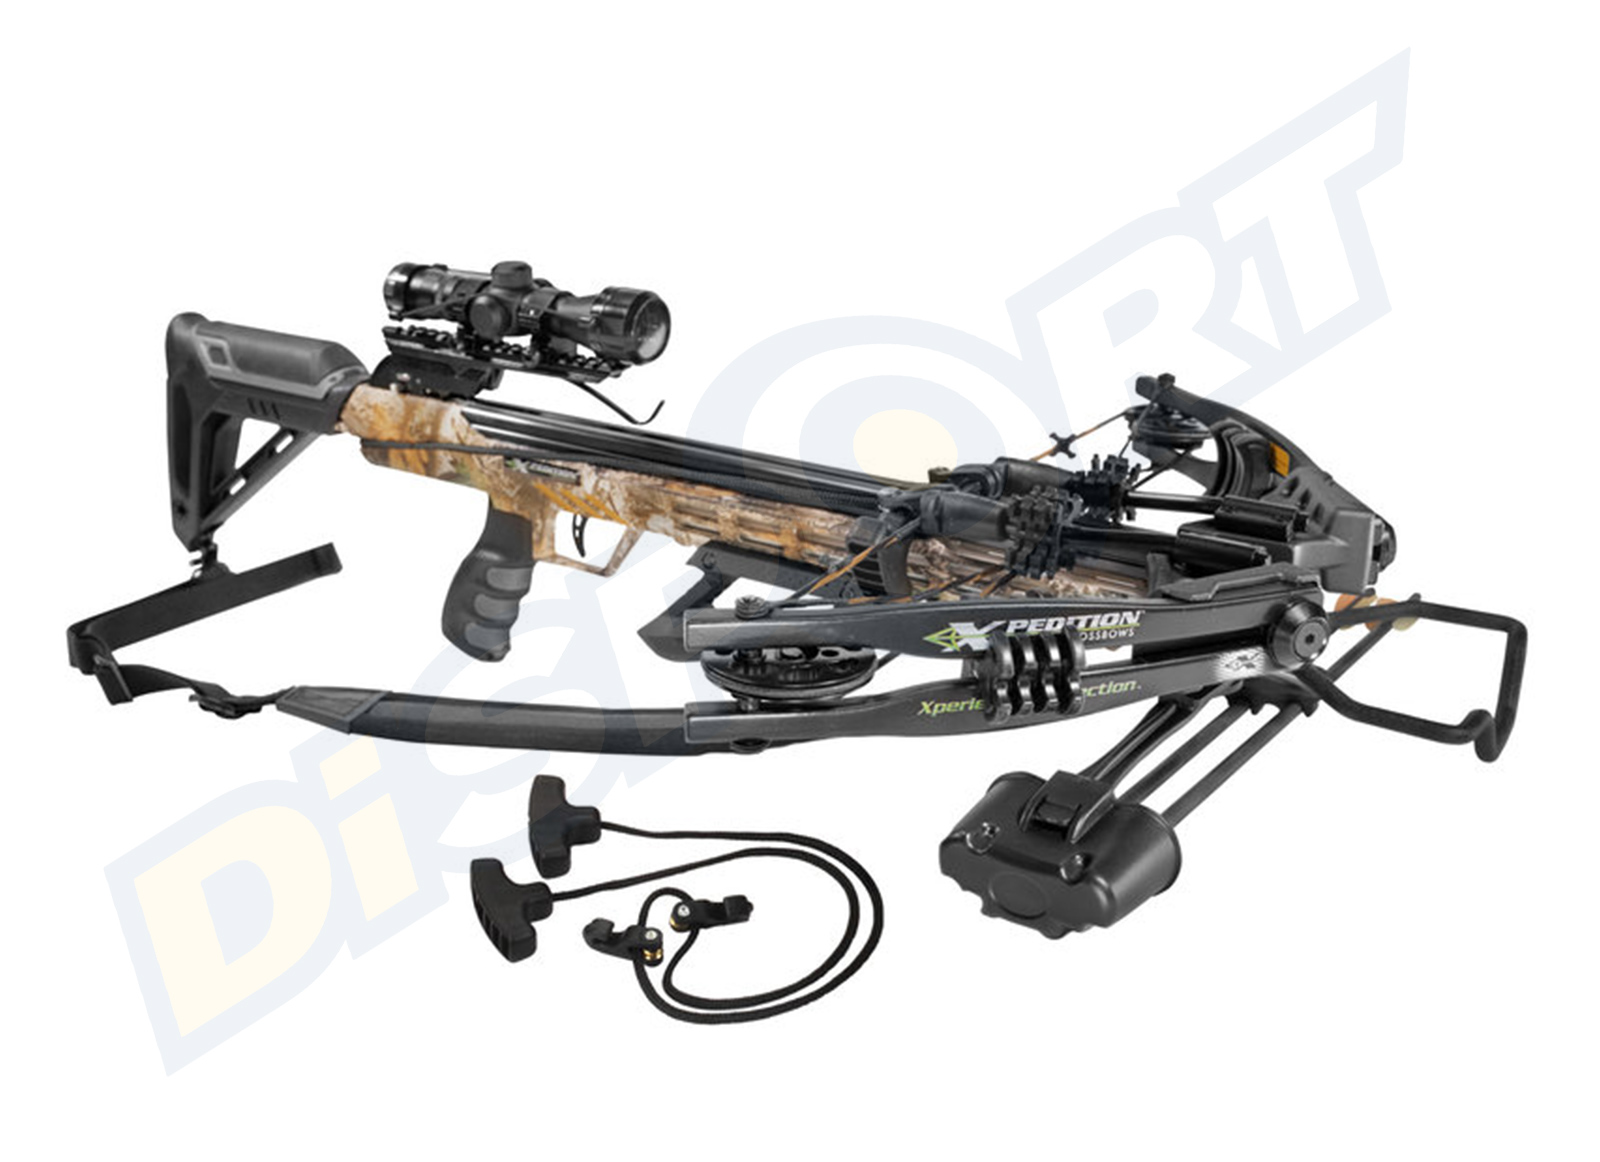 XPEDITION ARCHERY BALESTRA VIKING X-375 CROSSBOW COMBO KIT